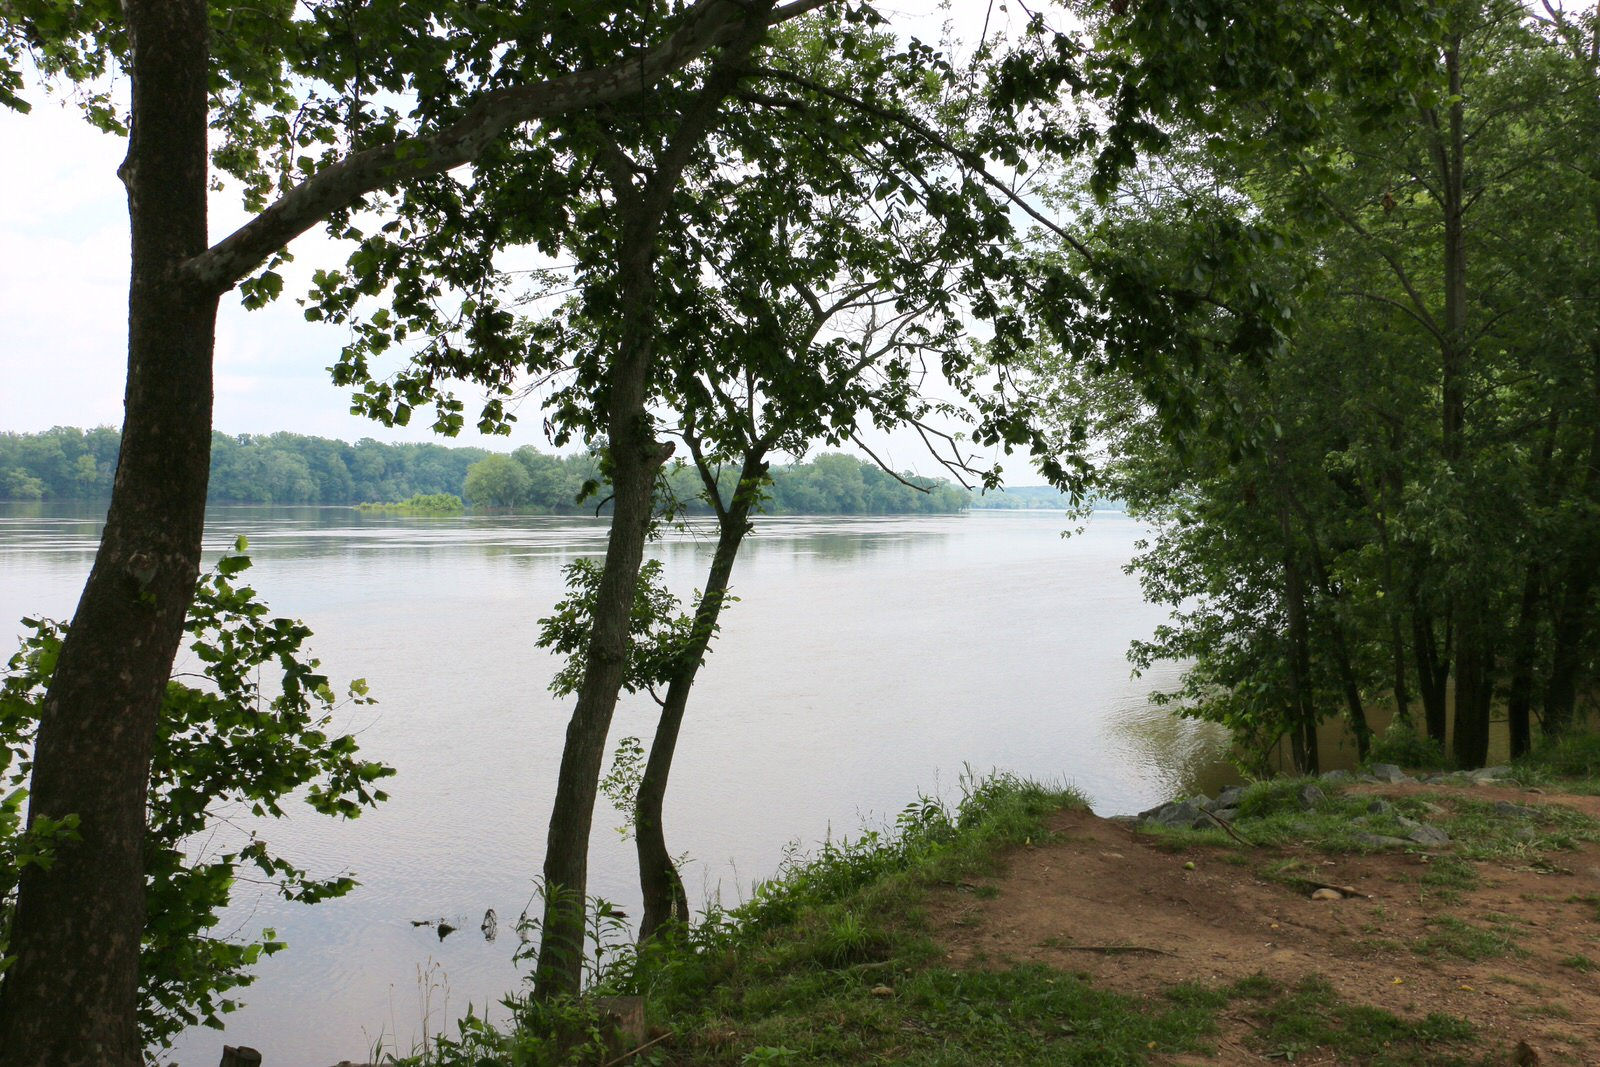 photo: The Potomac River at Algonkian Regional Park. Photo by Jim Northrup Creative Commons.